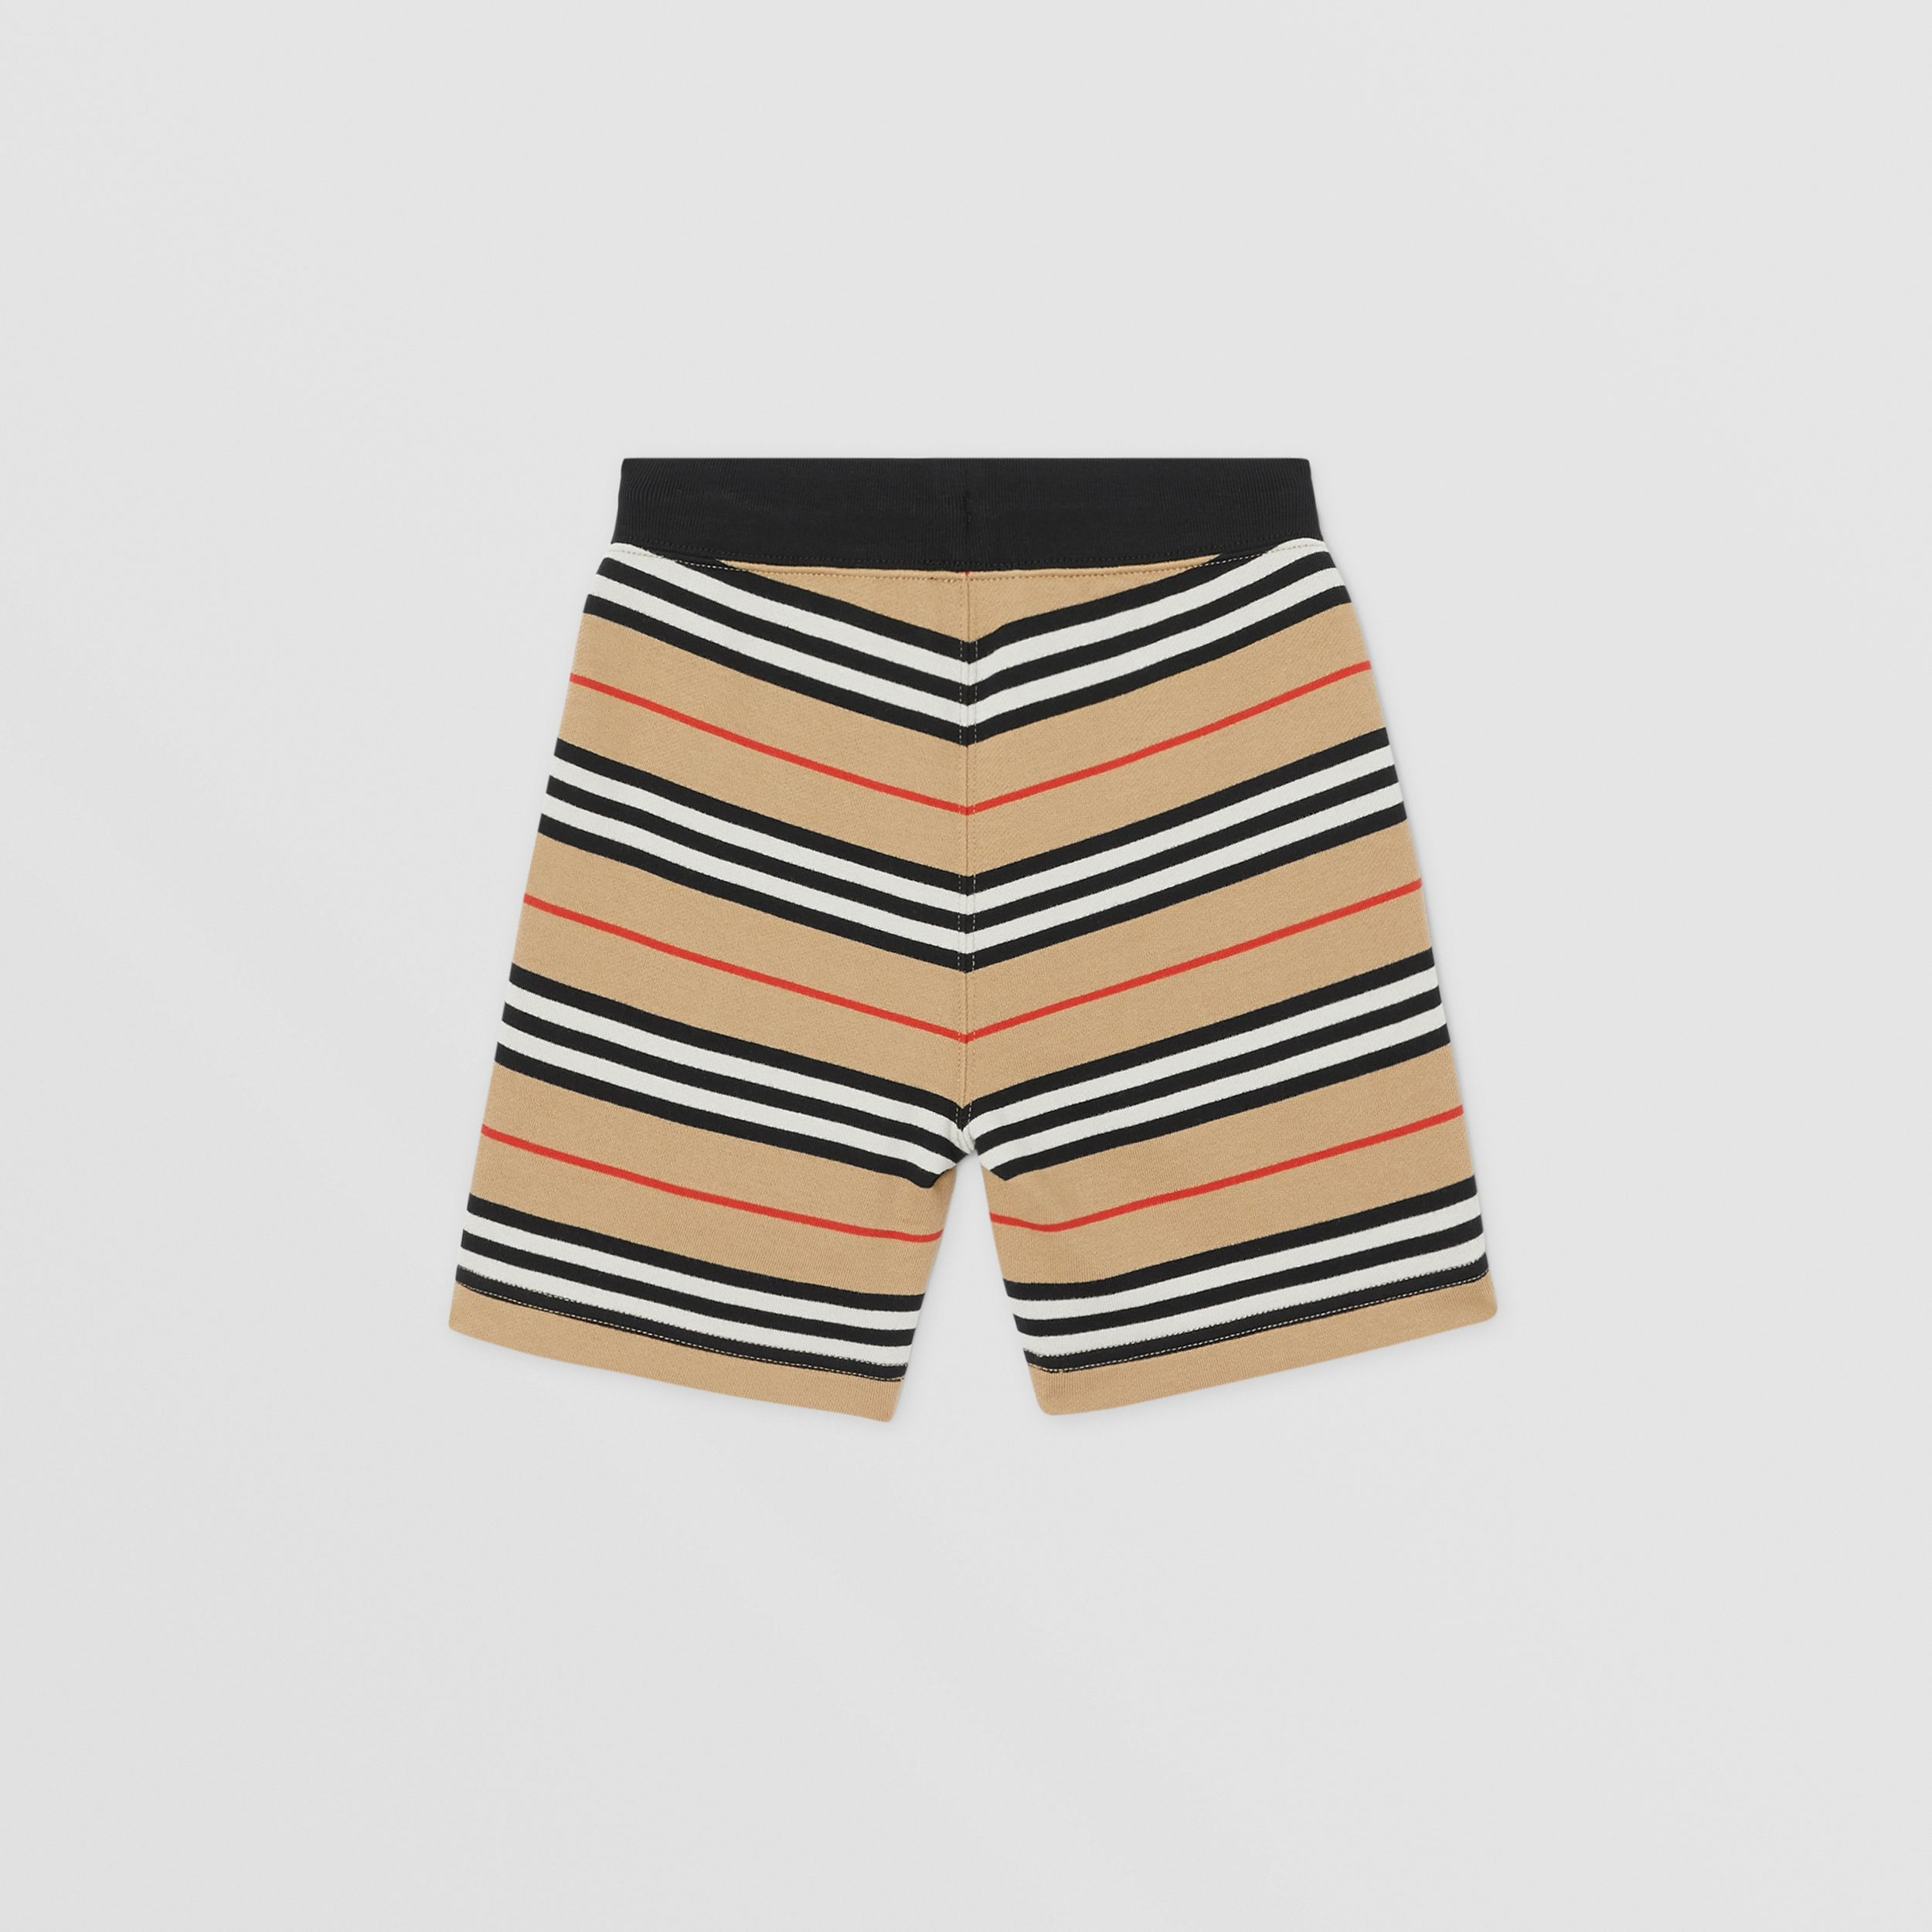 Icon Stripe Cotton Shorts in Archive Beige | Burberry - 4